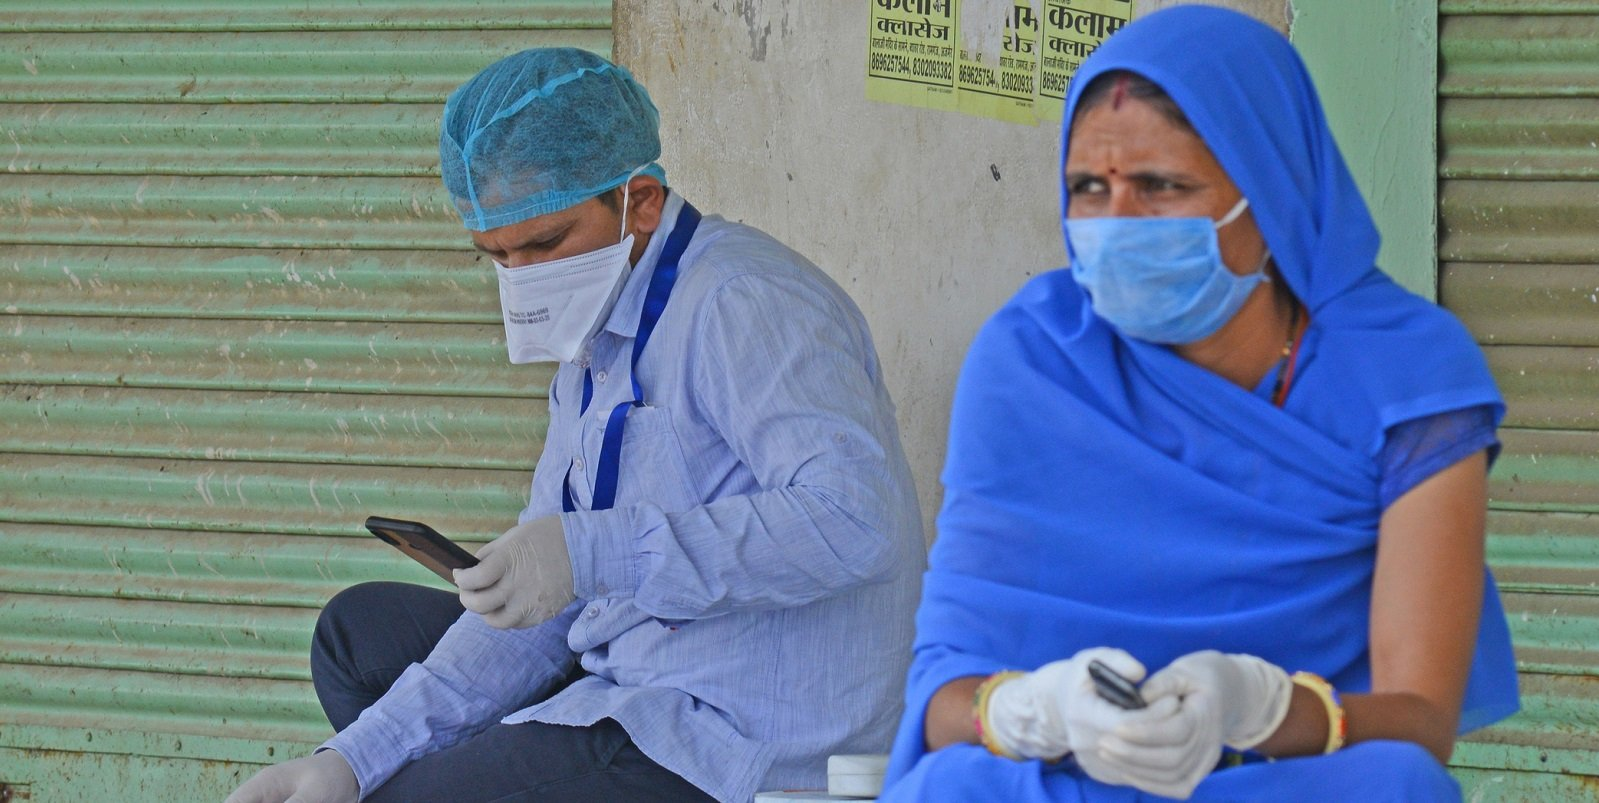 A male and female community health worker sitting down. The male health worker is looking at his mobile phone.